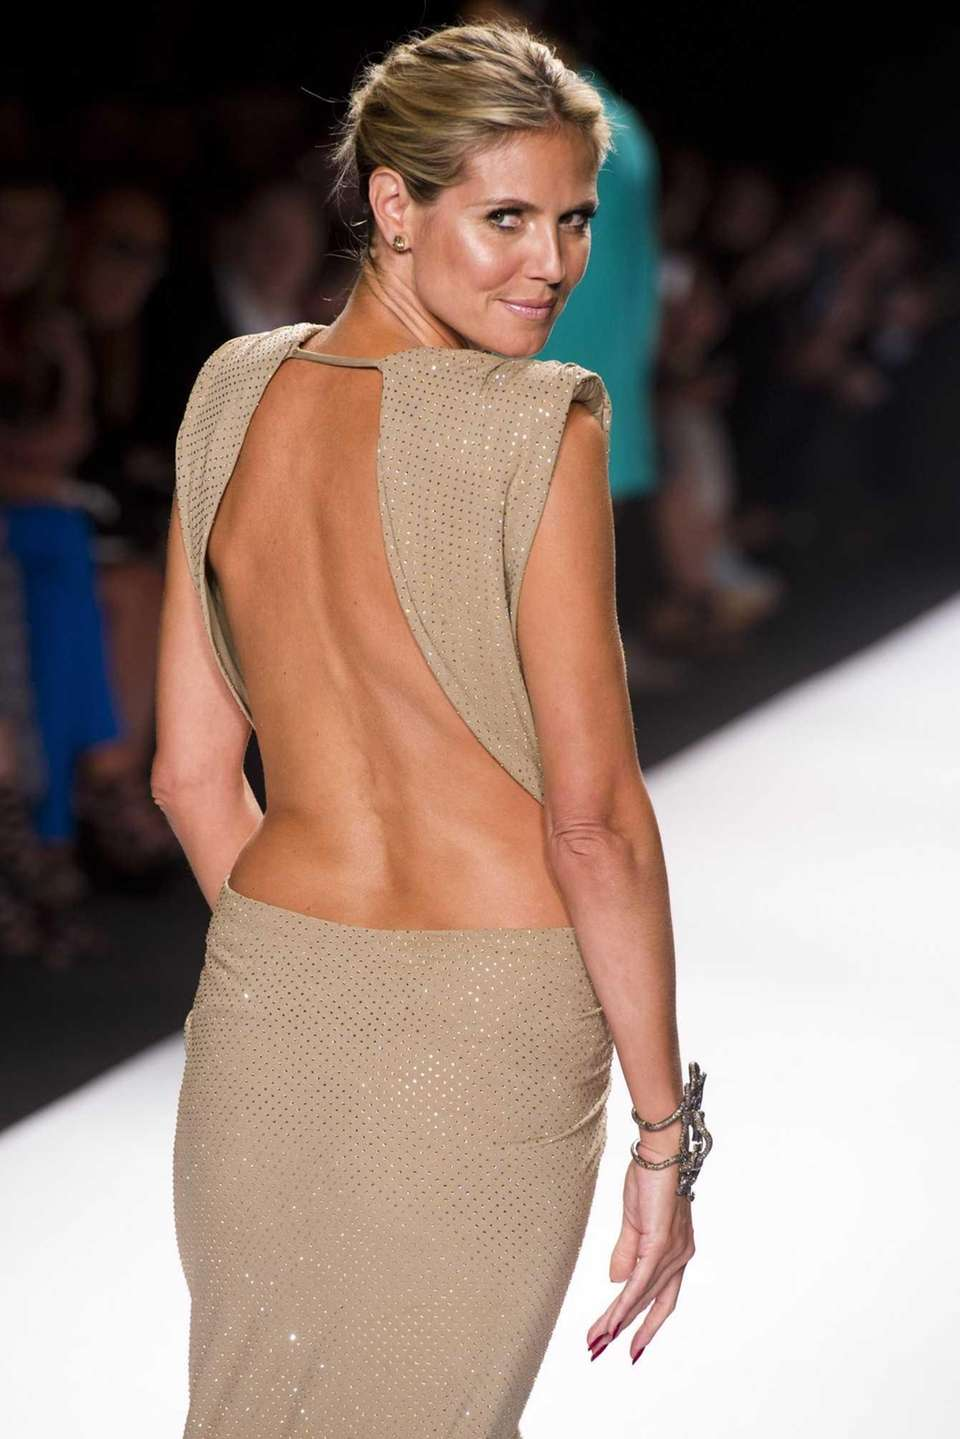 Heidi Klum poses on the runway at the